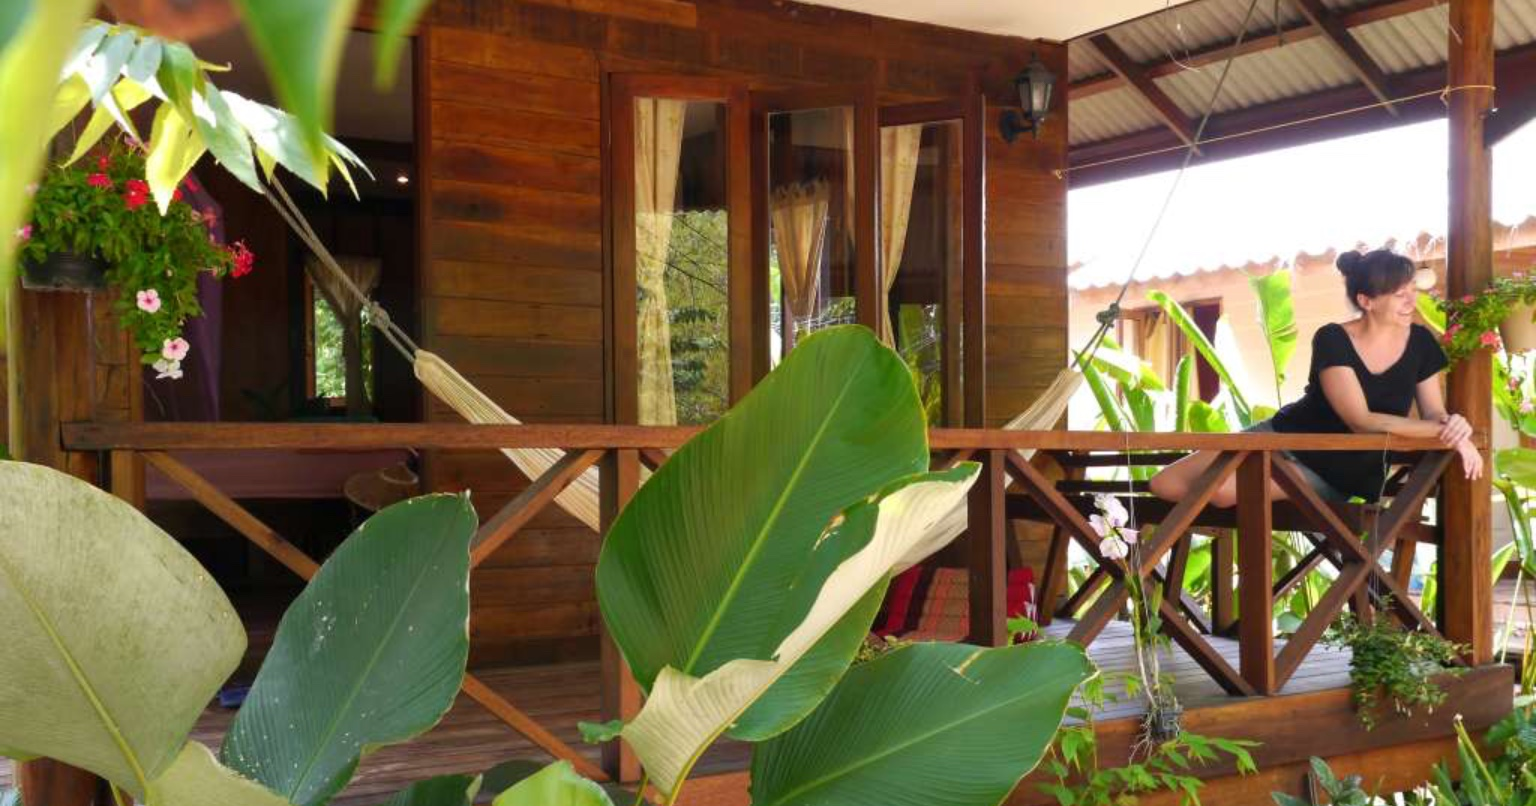 Relaxing on the porch of an island bungalow at the Koh Yao Noi yoga retreat center.